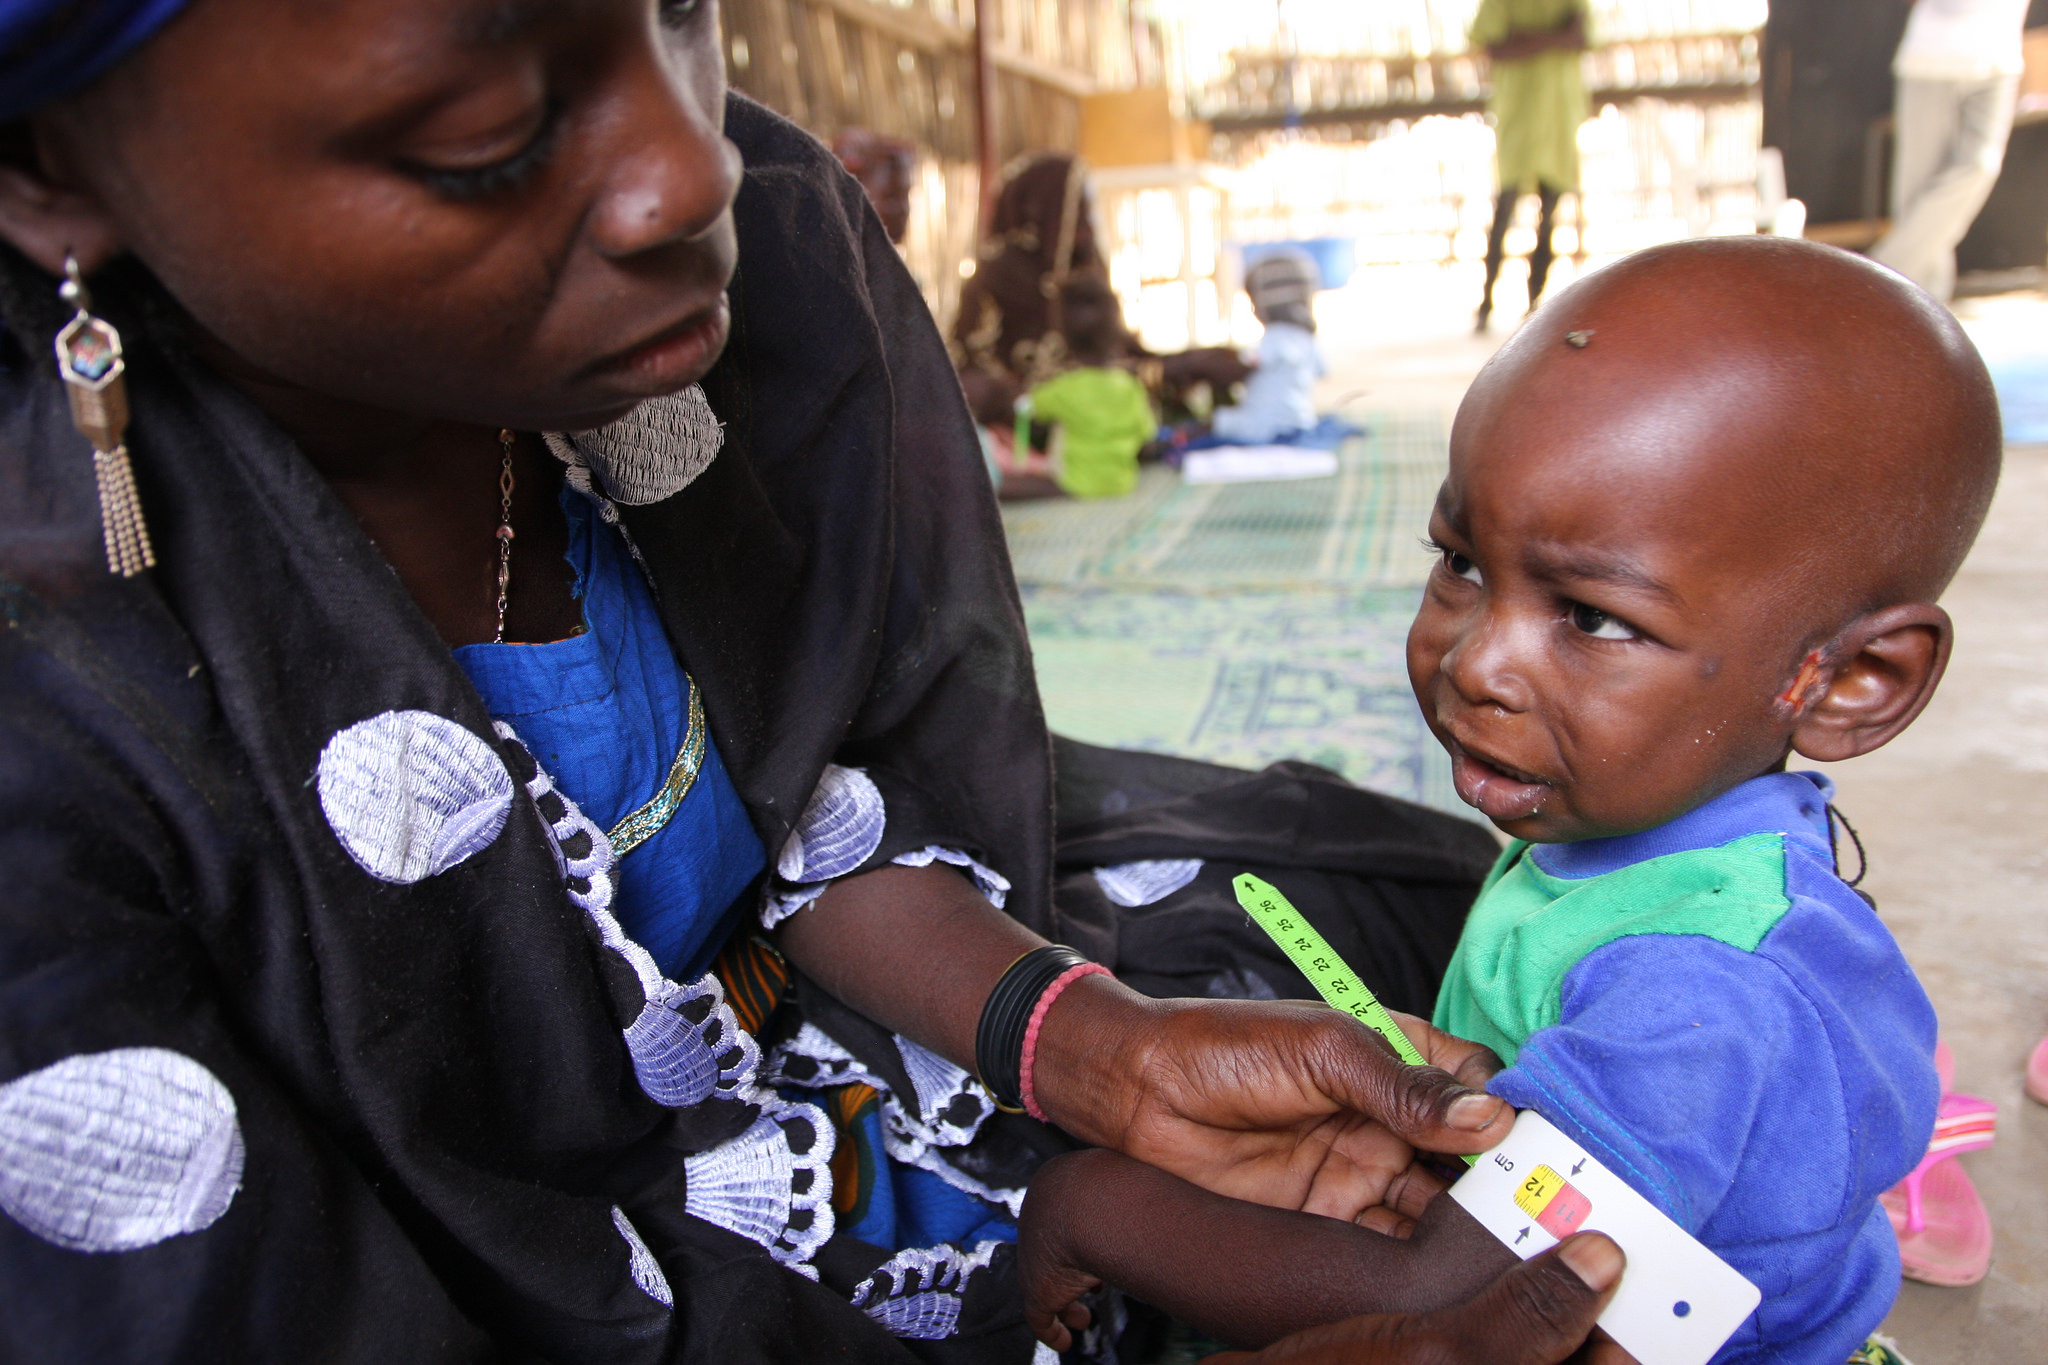 A woman in Niger measures her baby's arm circumference—part of a program that teaches mothers to regularly monitor for signs of malnutrition. Such integrated nutrition interventions can play a key role in improving overall public health, according to IFPRI Senior Research Fellow Harold Alderman.